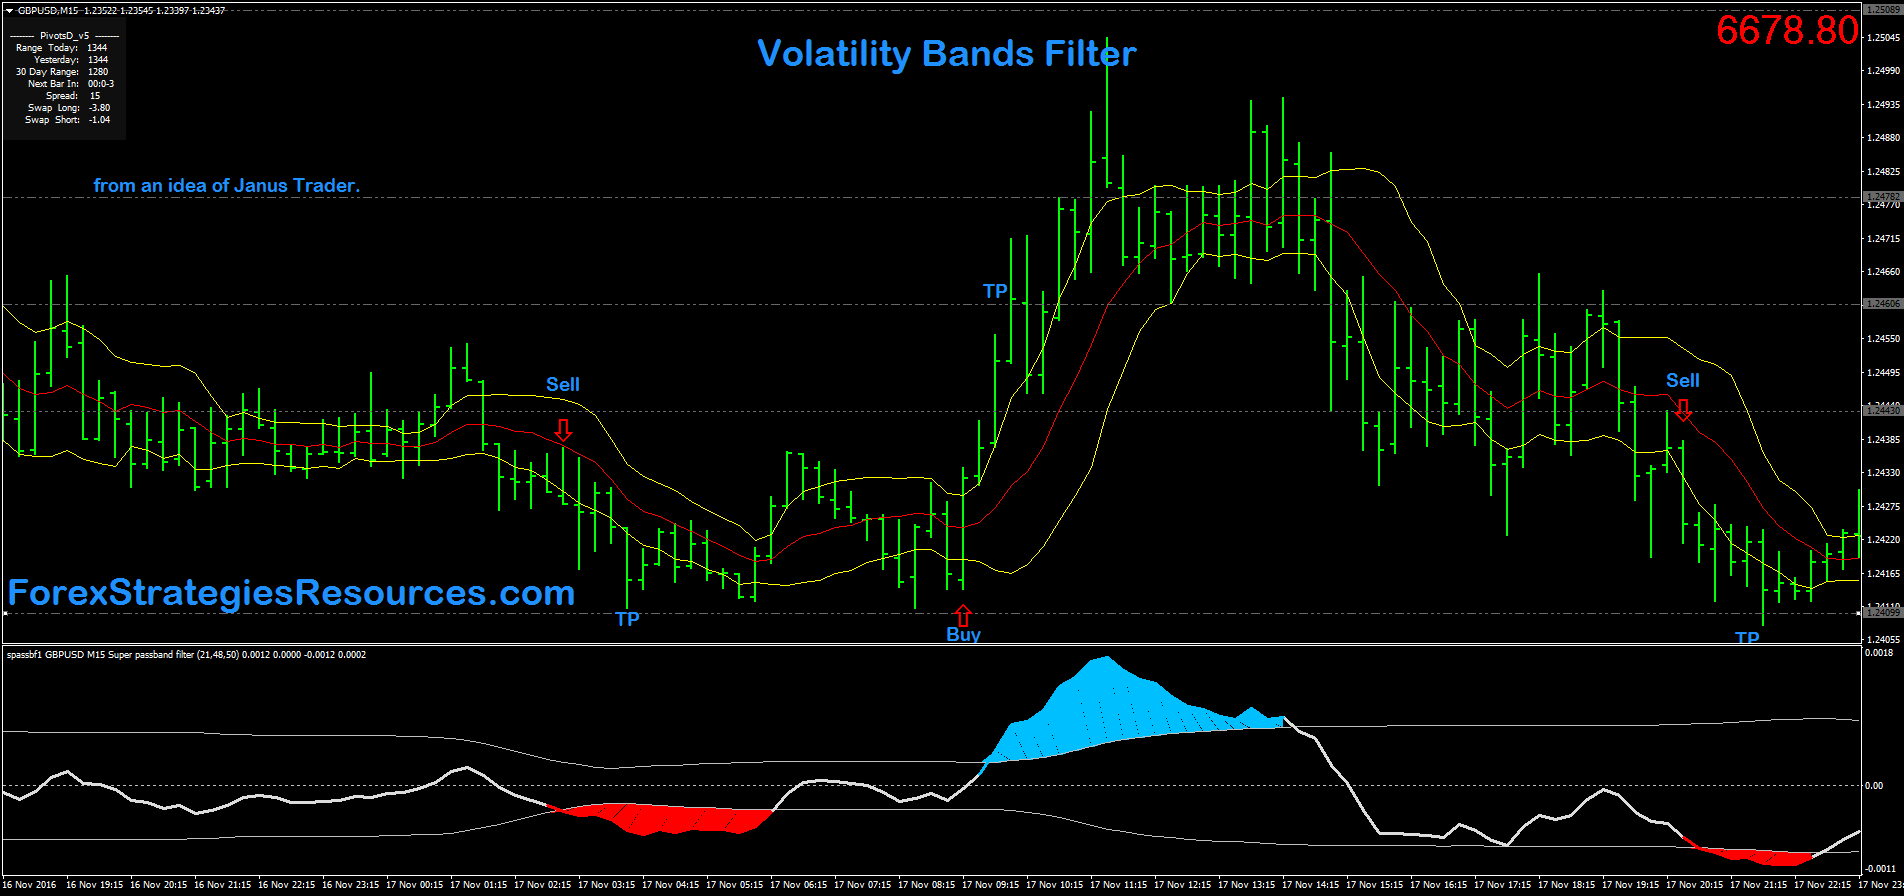 Implied volatility trading system